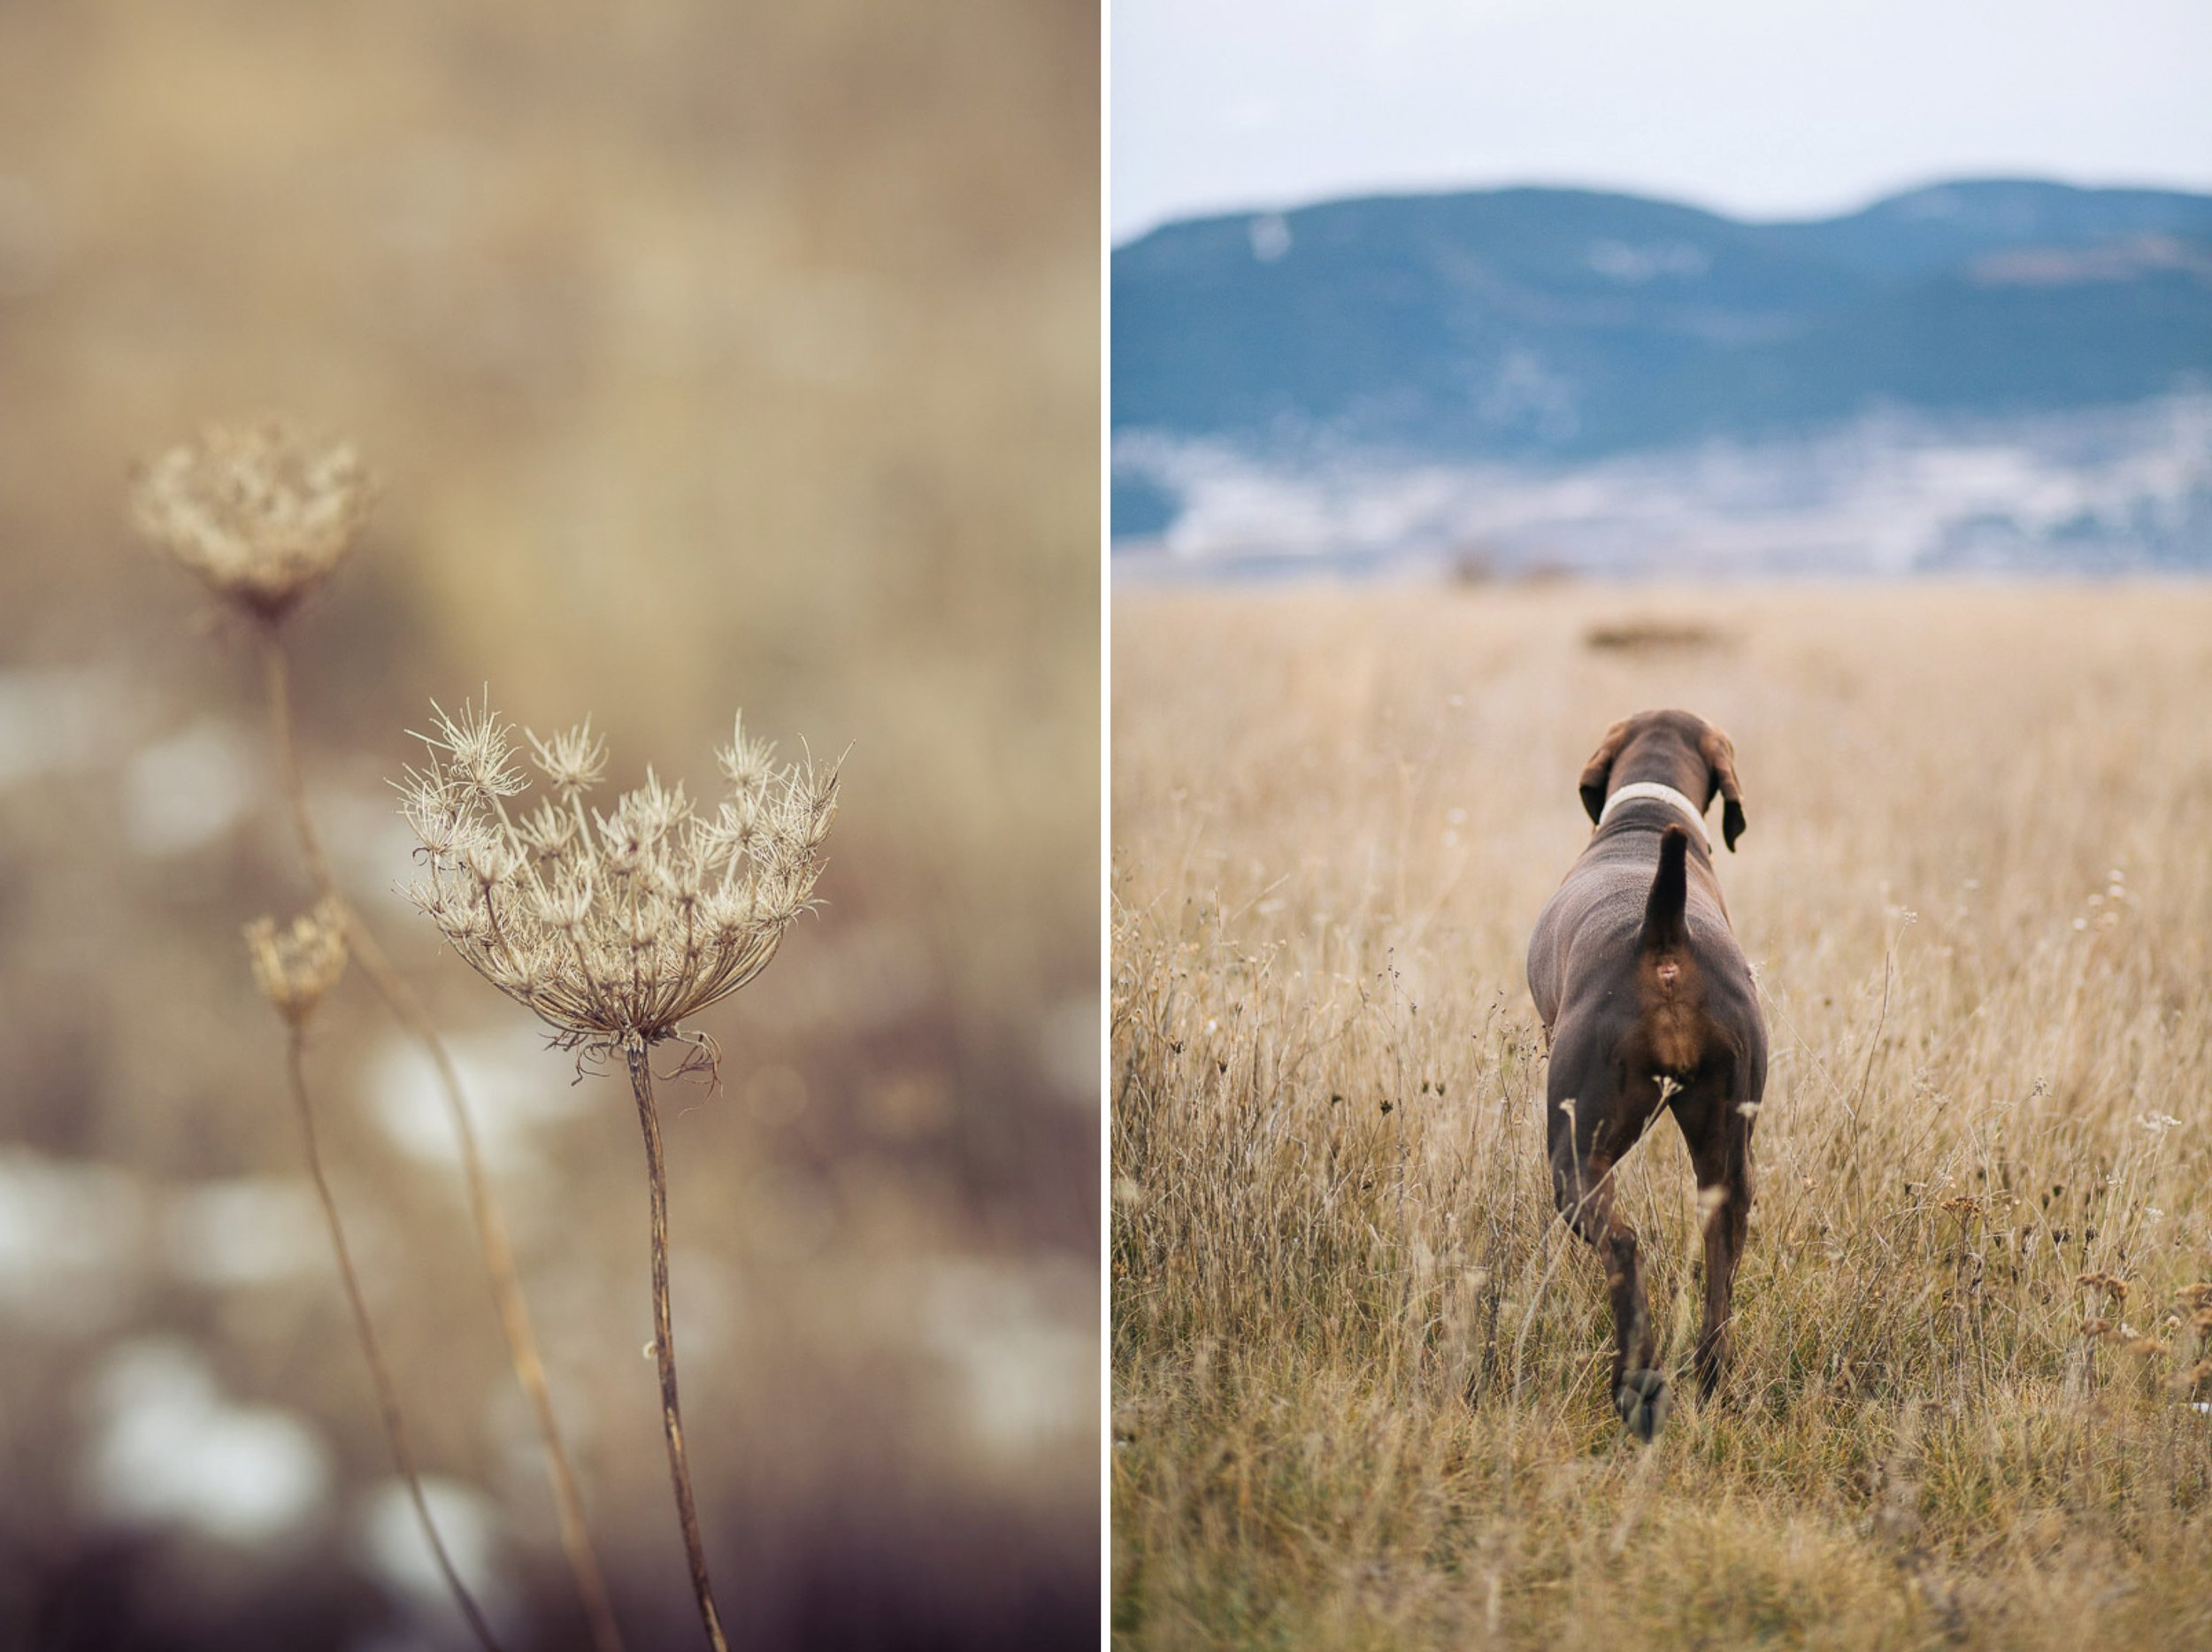 dog-lifestyle-photographer-hunter-dogs-fetching-pheasants-nature-outdoors-bloodhounts-5.jpg